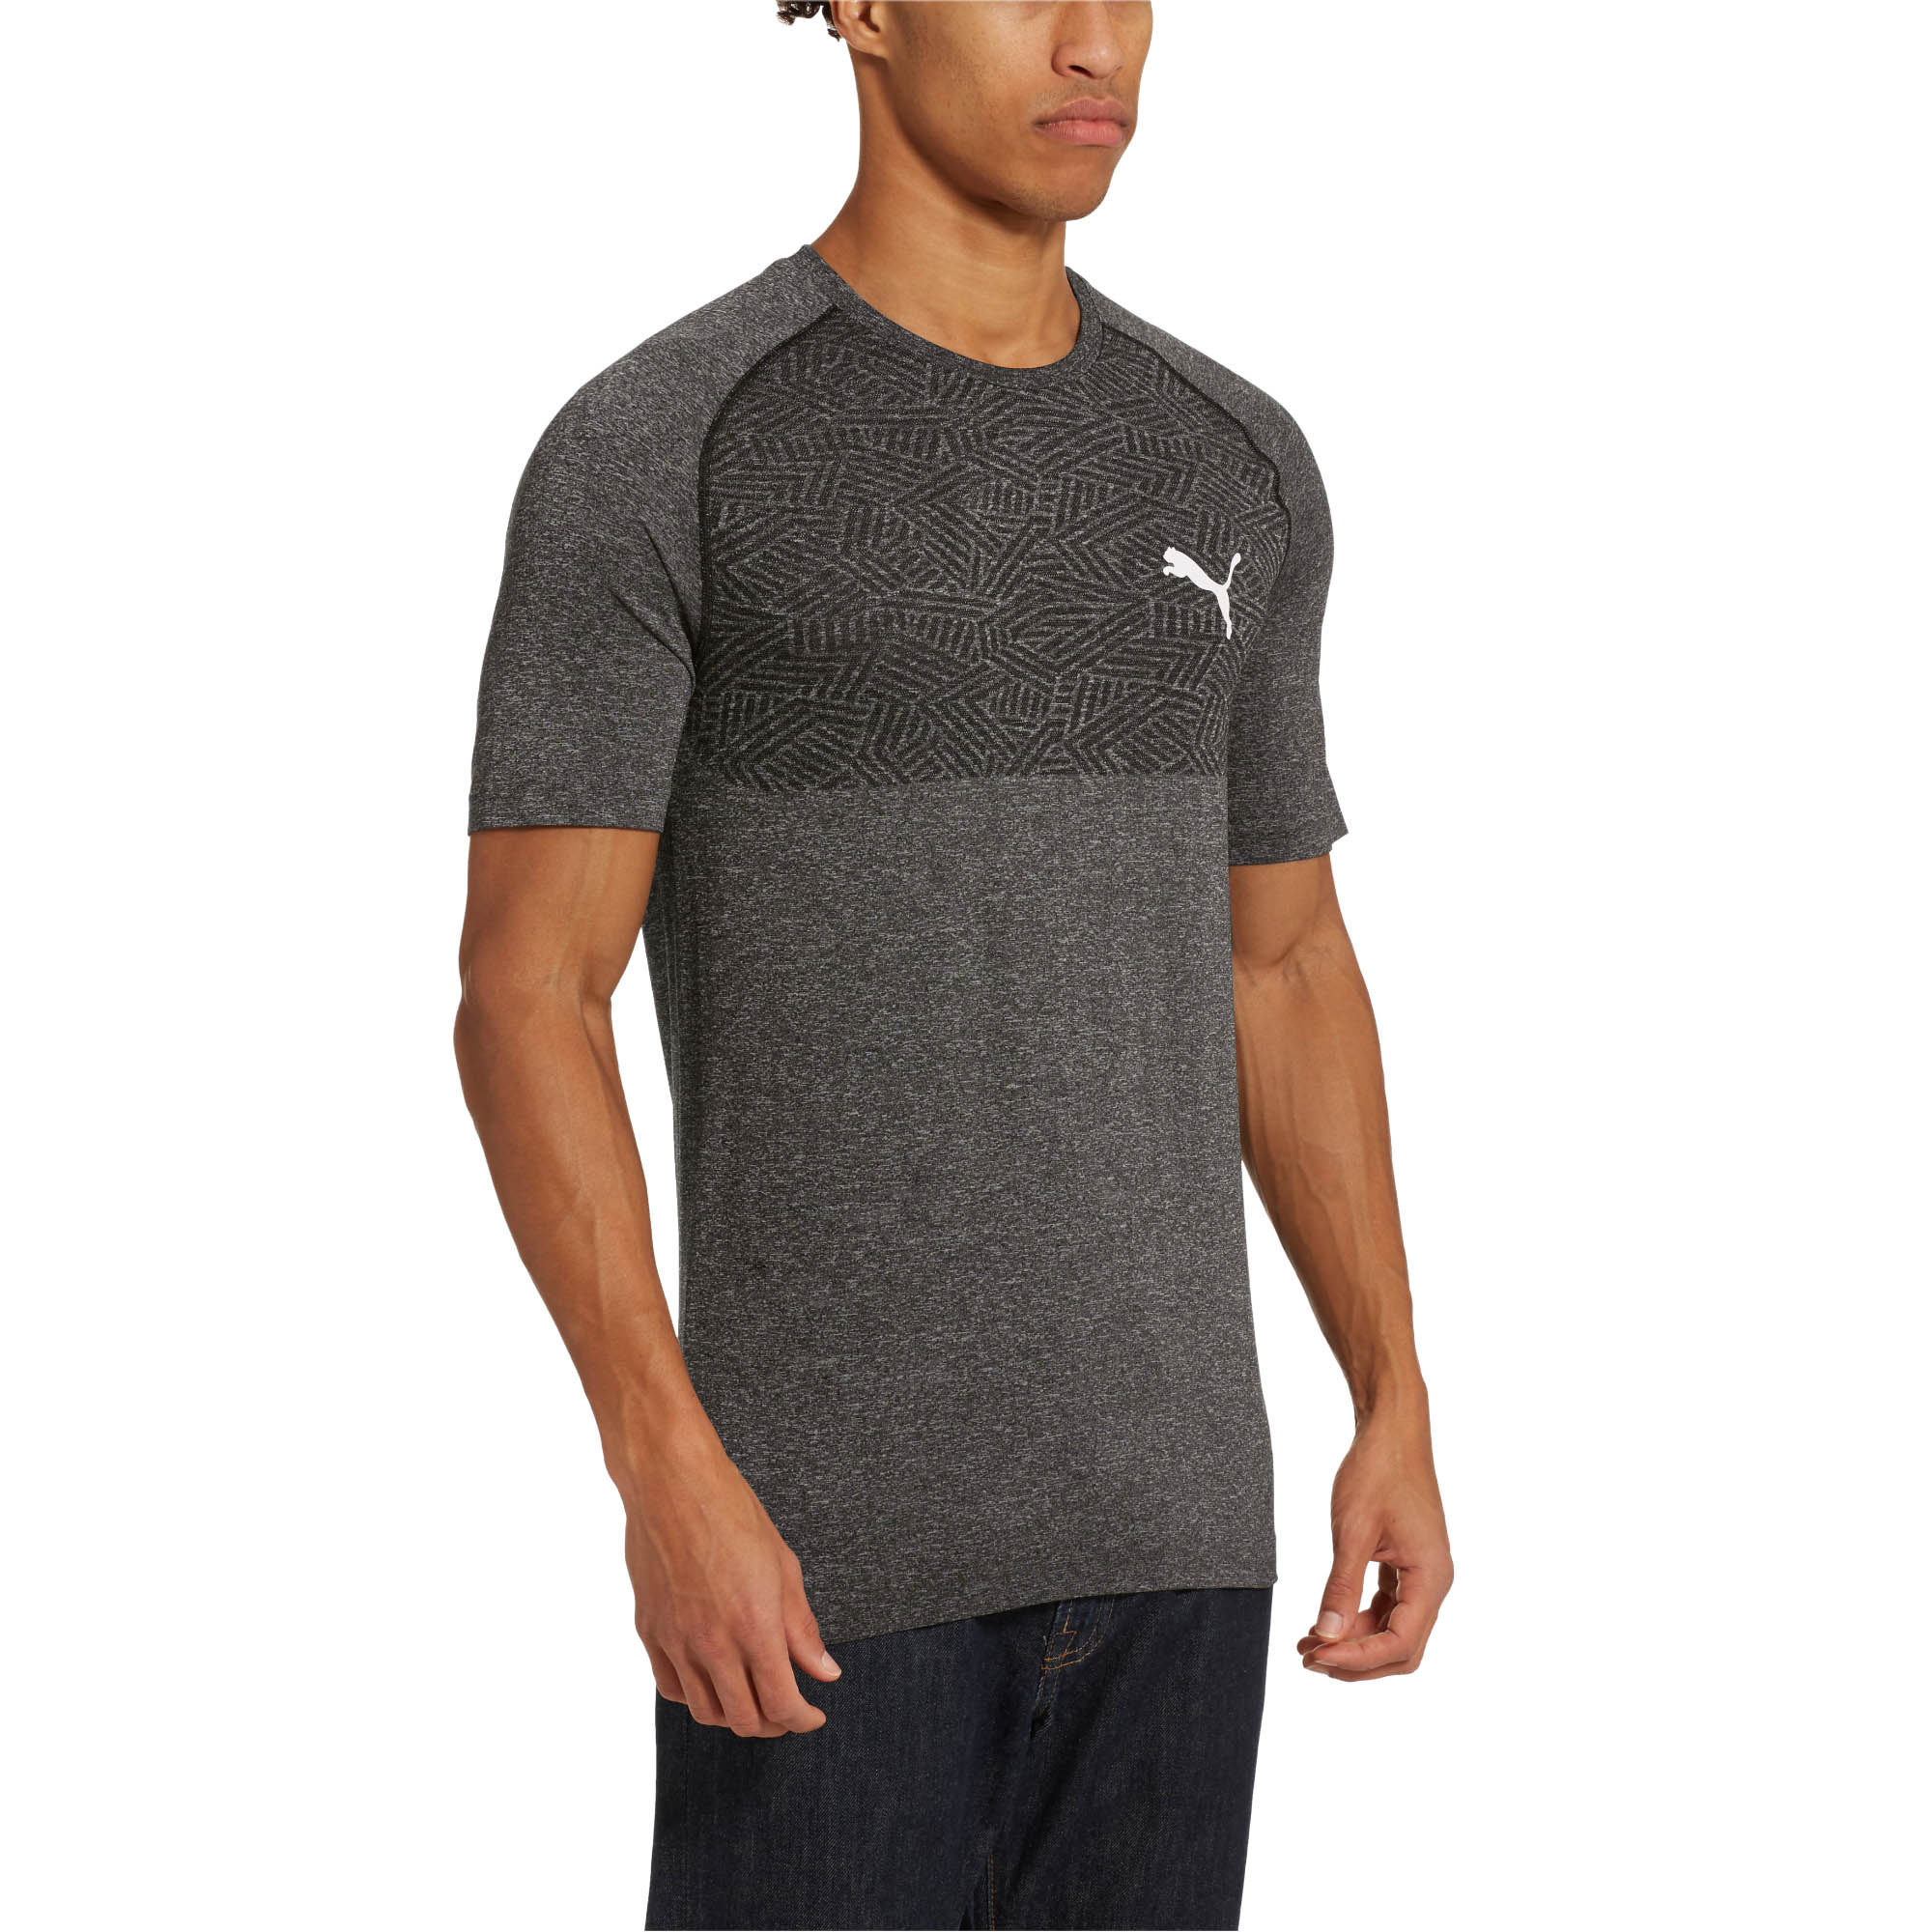 PUMA-Tec-Sports-Men-s-evoKNIT-Tee-Men-Tee-Basics thumbnail 10